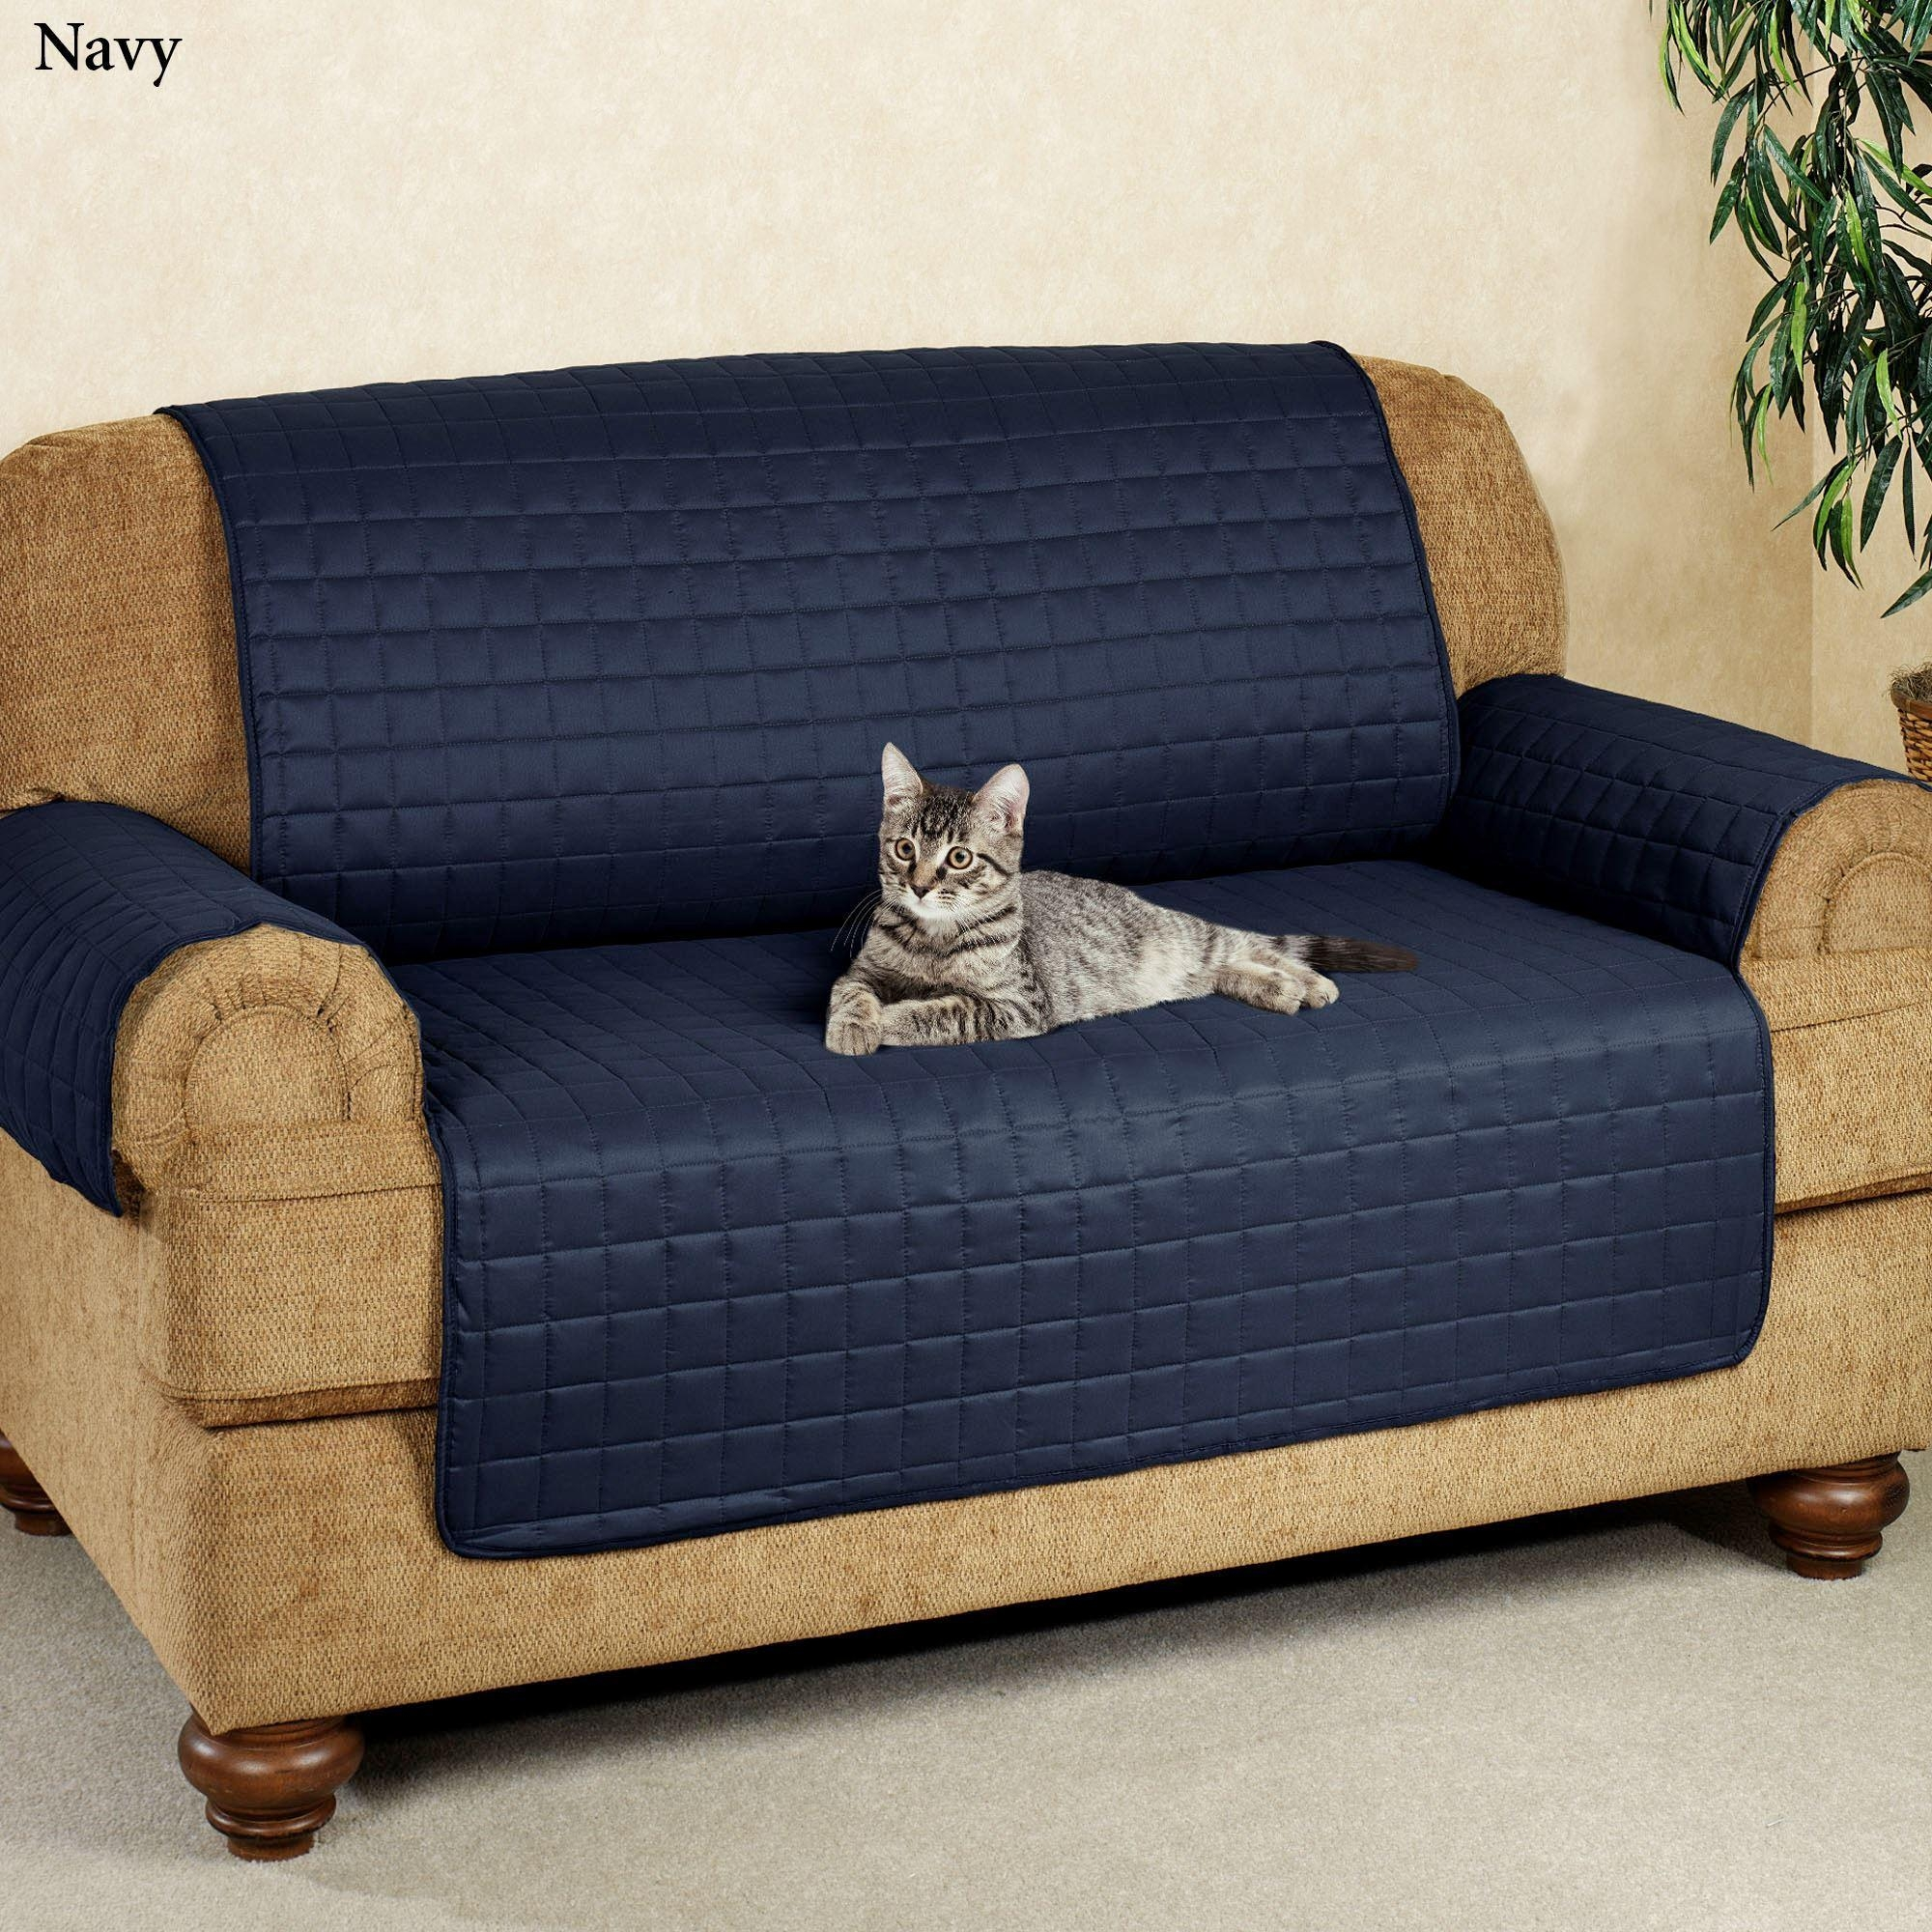 Microfiber Pet Furniture Covers With Tuck In Flaps Intended For Blue Microfiber Sofas (Image 10 of 20)